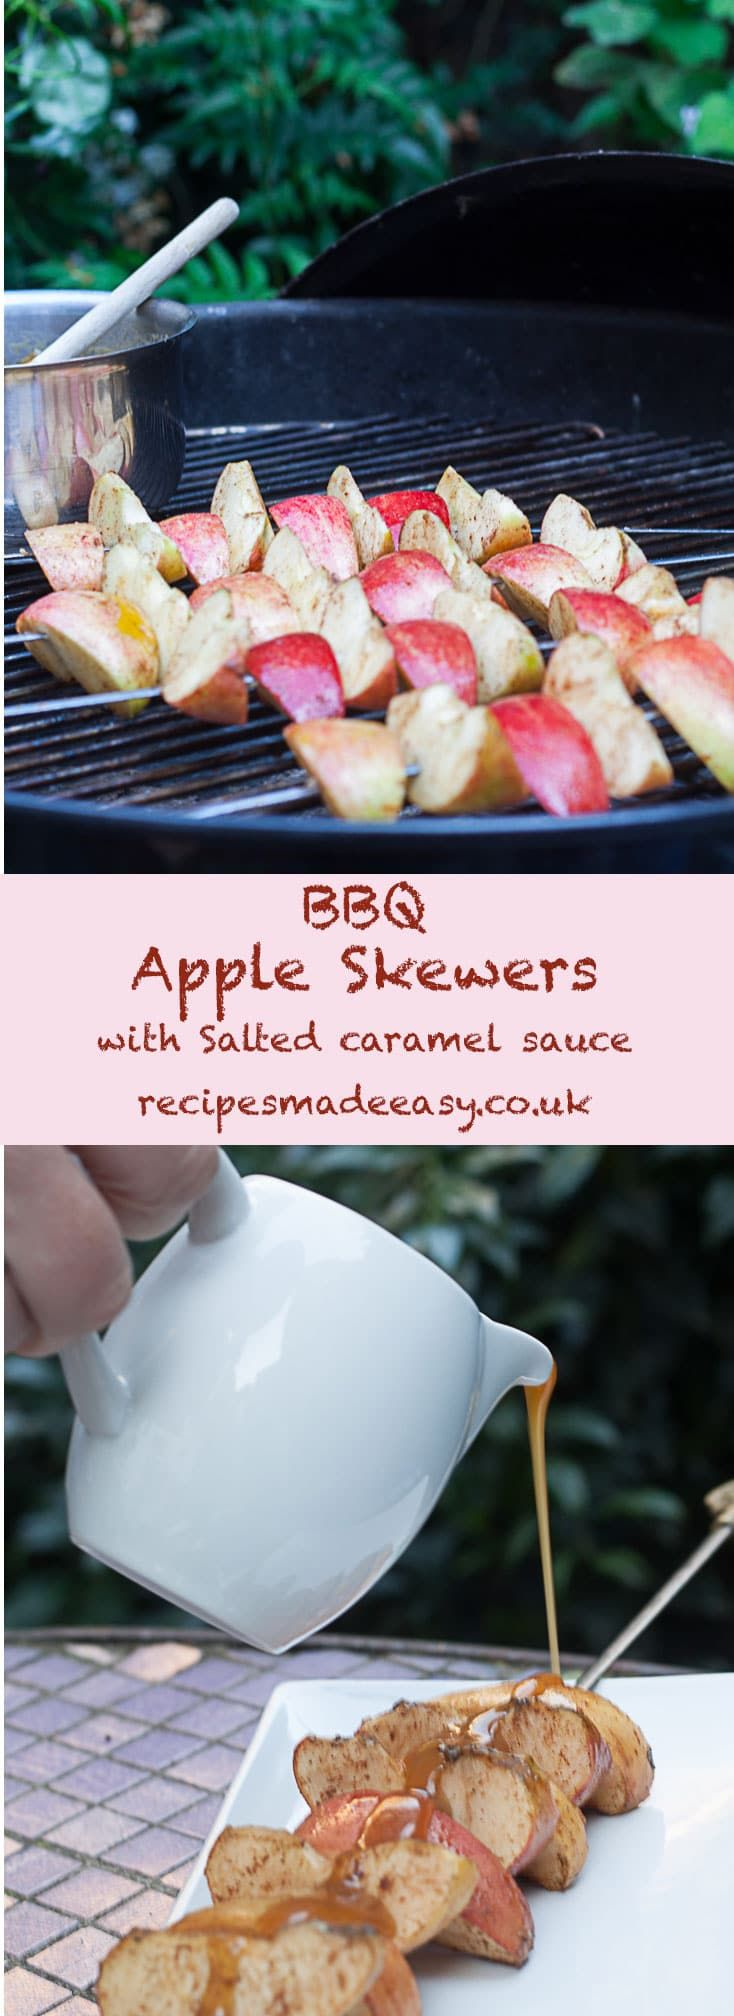 BBQ Apple Skewers with Salted Caramel Sauce - by Recipes Made Easy. Finish your barbecue meal with these easy to prepare and quick to cook apple skewers.  via @jacdotbee